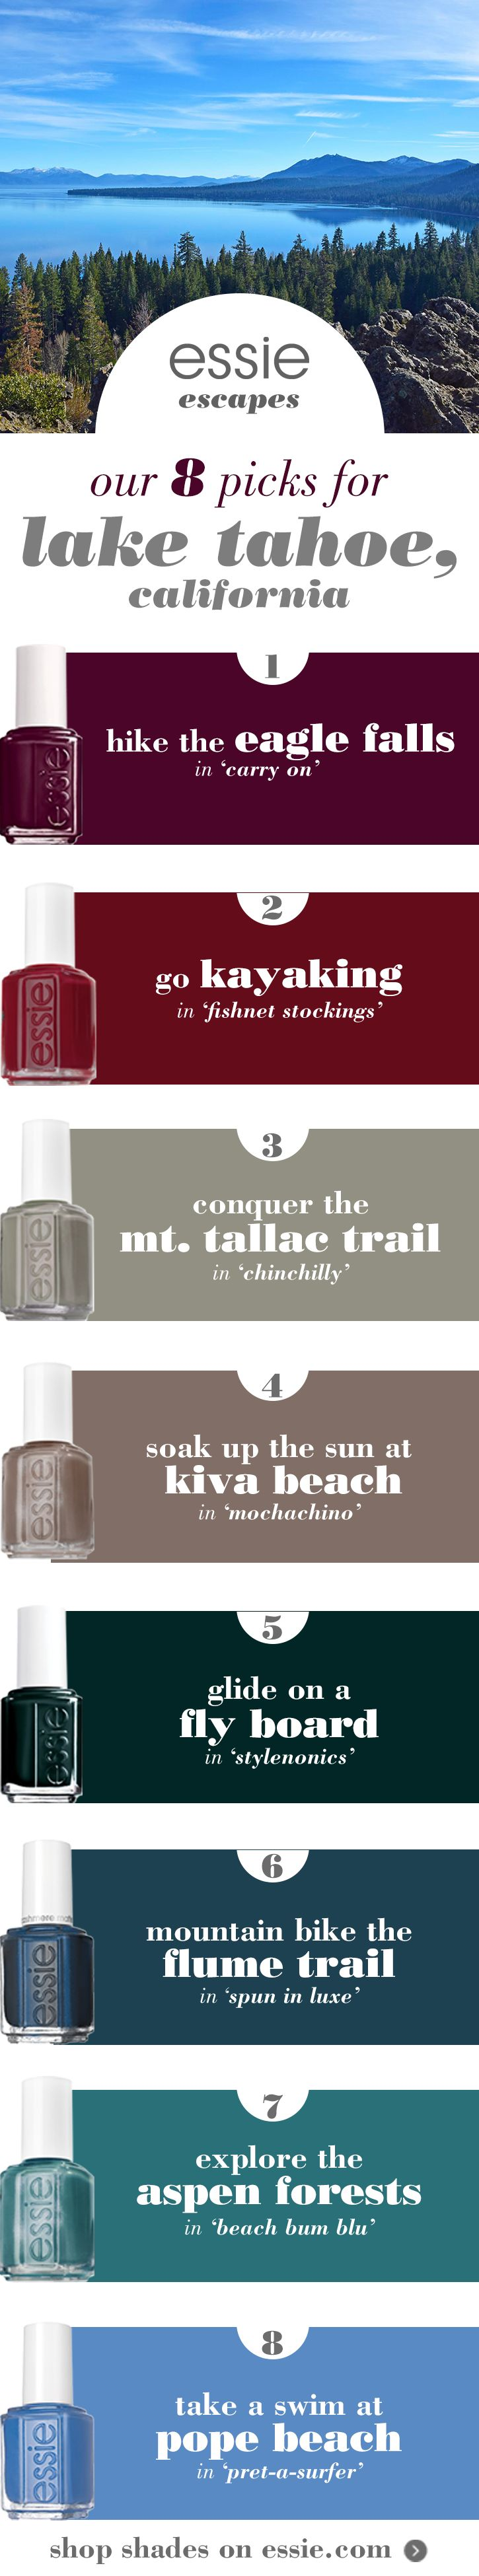 Explore beautiful Lake Tahoe, California! Conquer the Mt. Tallac Trail in ' spun in luxe', go kayaking in 'fishnet stockings', and soak up the sun at Kiva Beach in 'mochachino'. No matter what you do on your getaway -- there's a perfect essie nail polish shade for you!